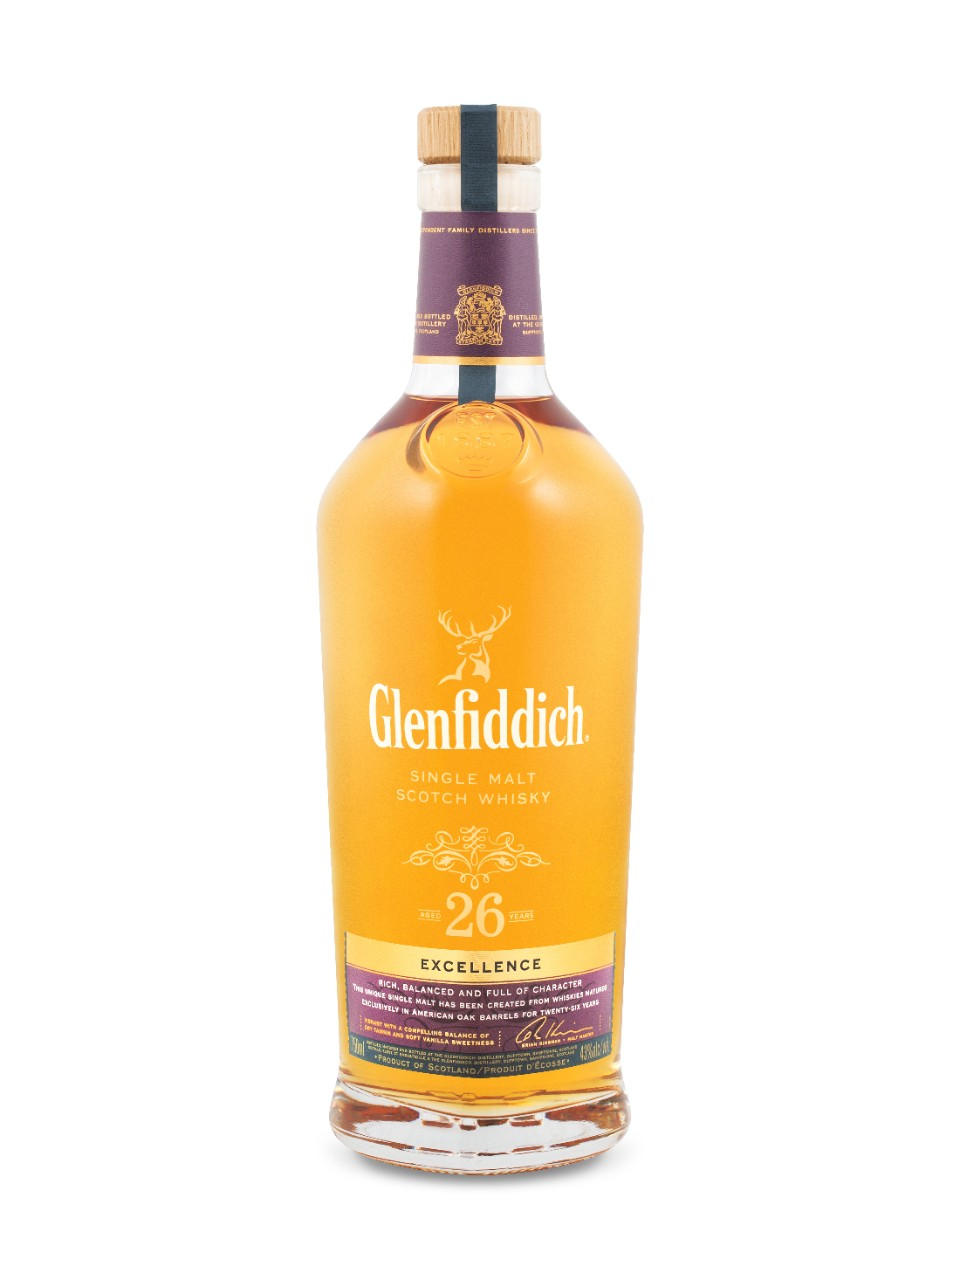 Glenfiddich Excellence 26-Year-Old Single Malt Scotch Whisky